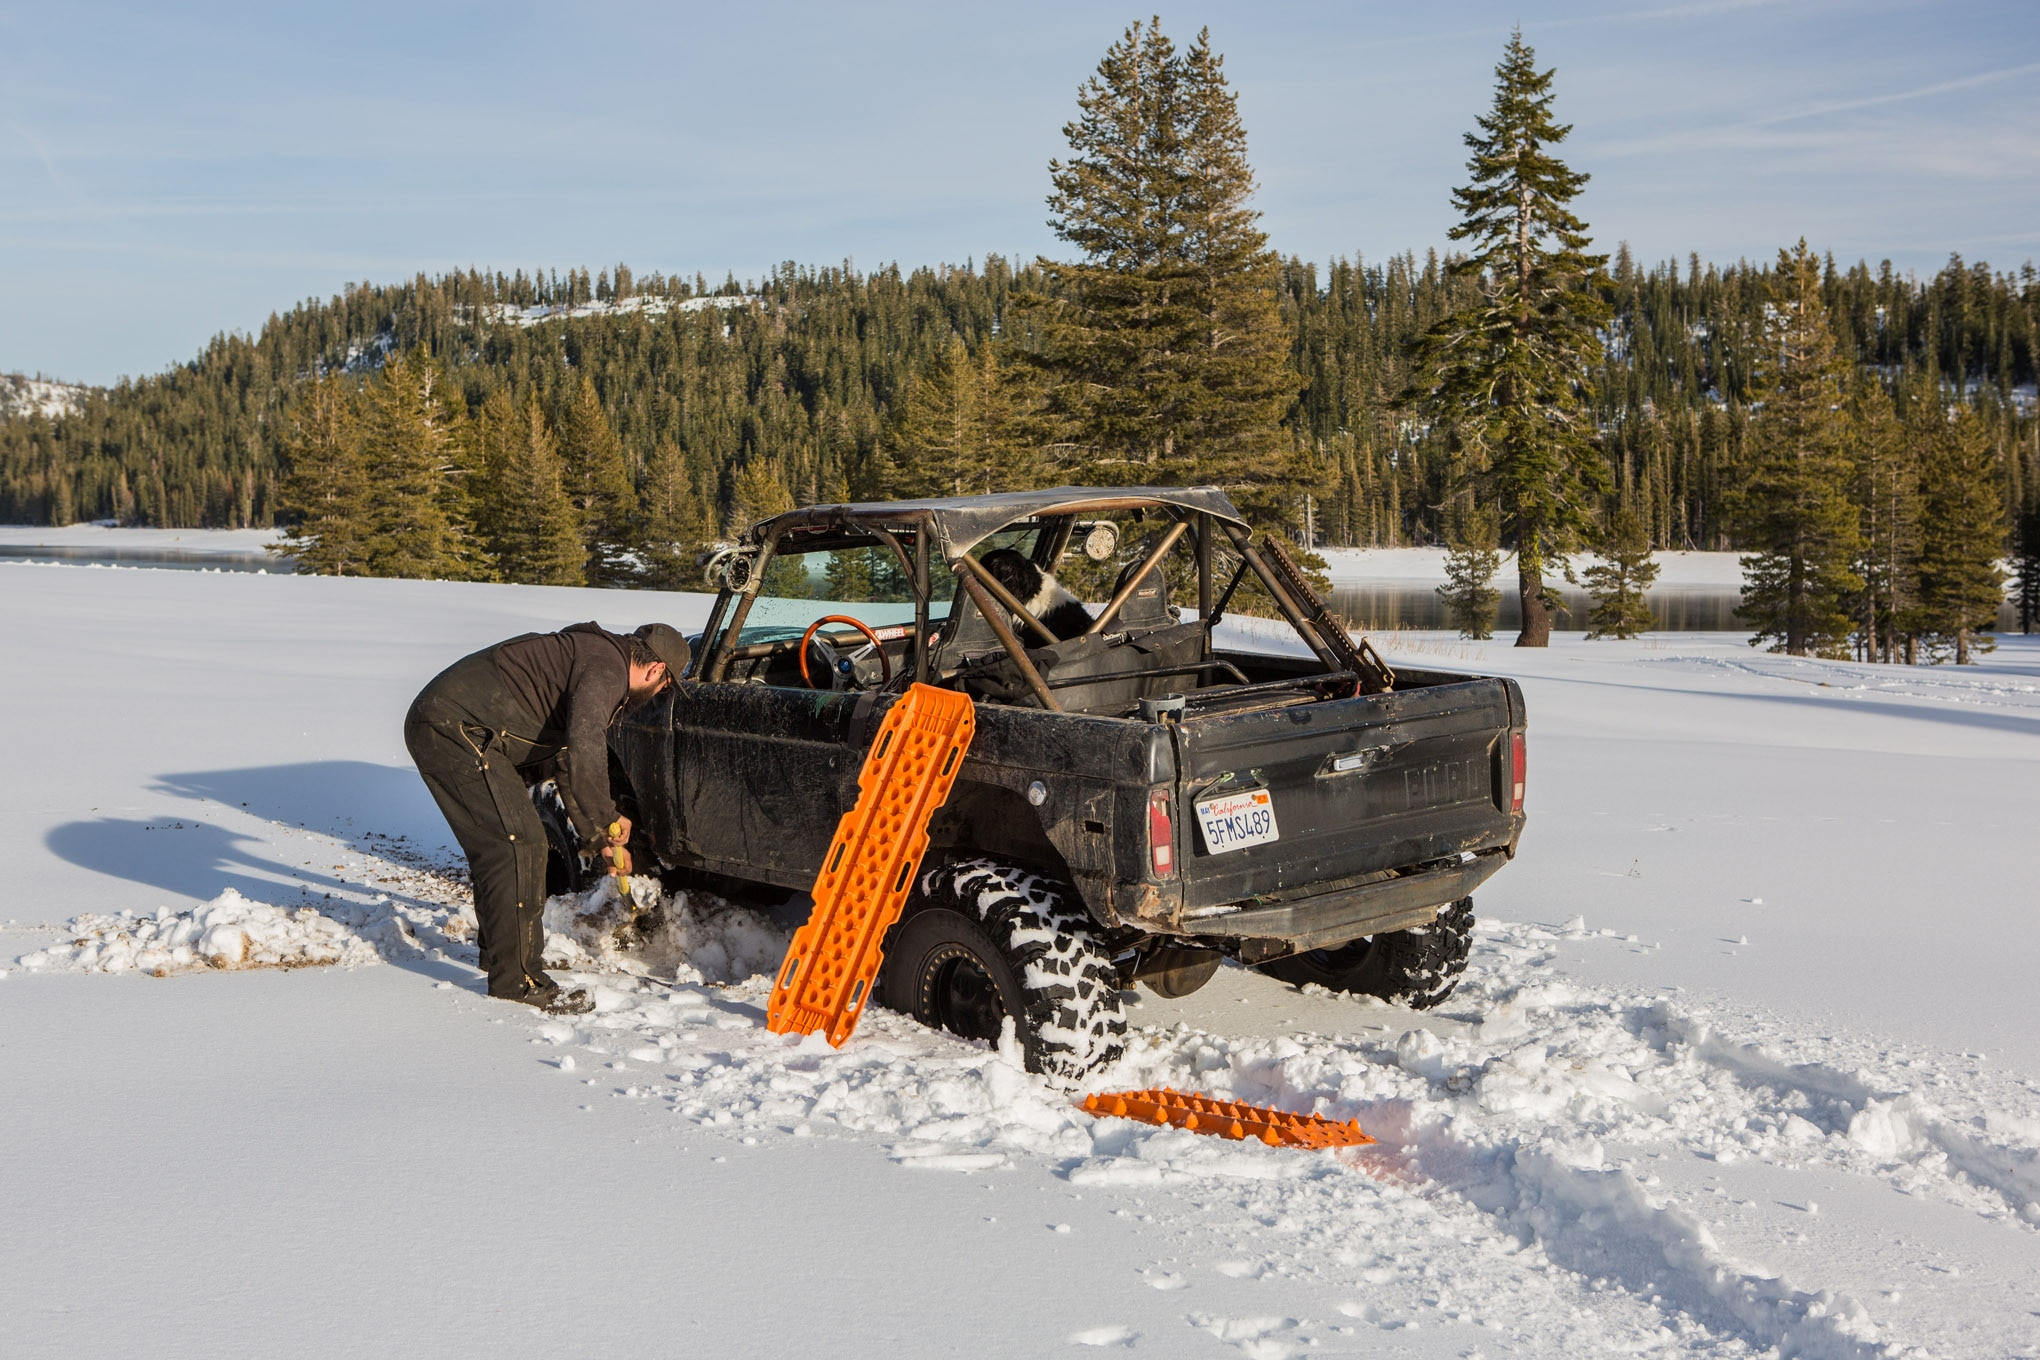 A Maxtrax is a useful tool that can help you get back on top of the snow if you break through the crust. Some work with a shovel beforehand will make the process easier, and we recommend carrying four Maxtraxes so you'll have one for each corner of the vehicle.